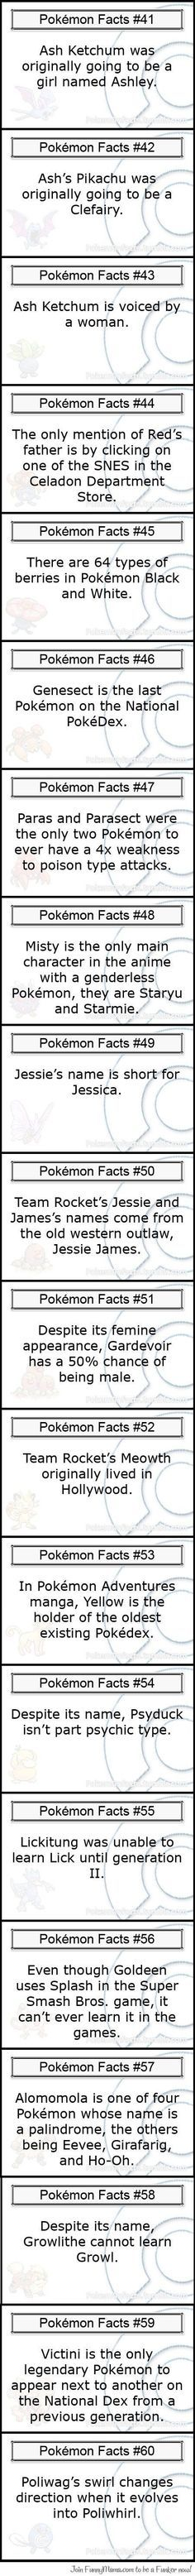 me saves a game did i save saves again just to make sure  pokemon facts part channel pokemon pokemon facts ynitgla part ash ketchum was originally going to be a girl pokemon facts 3 part